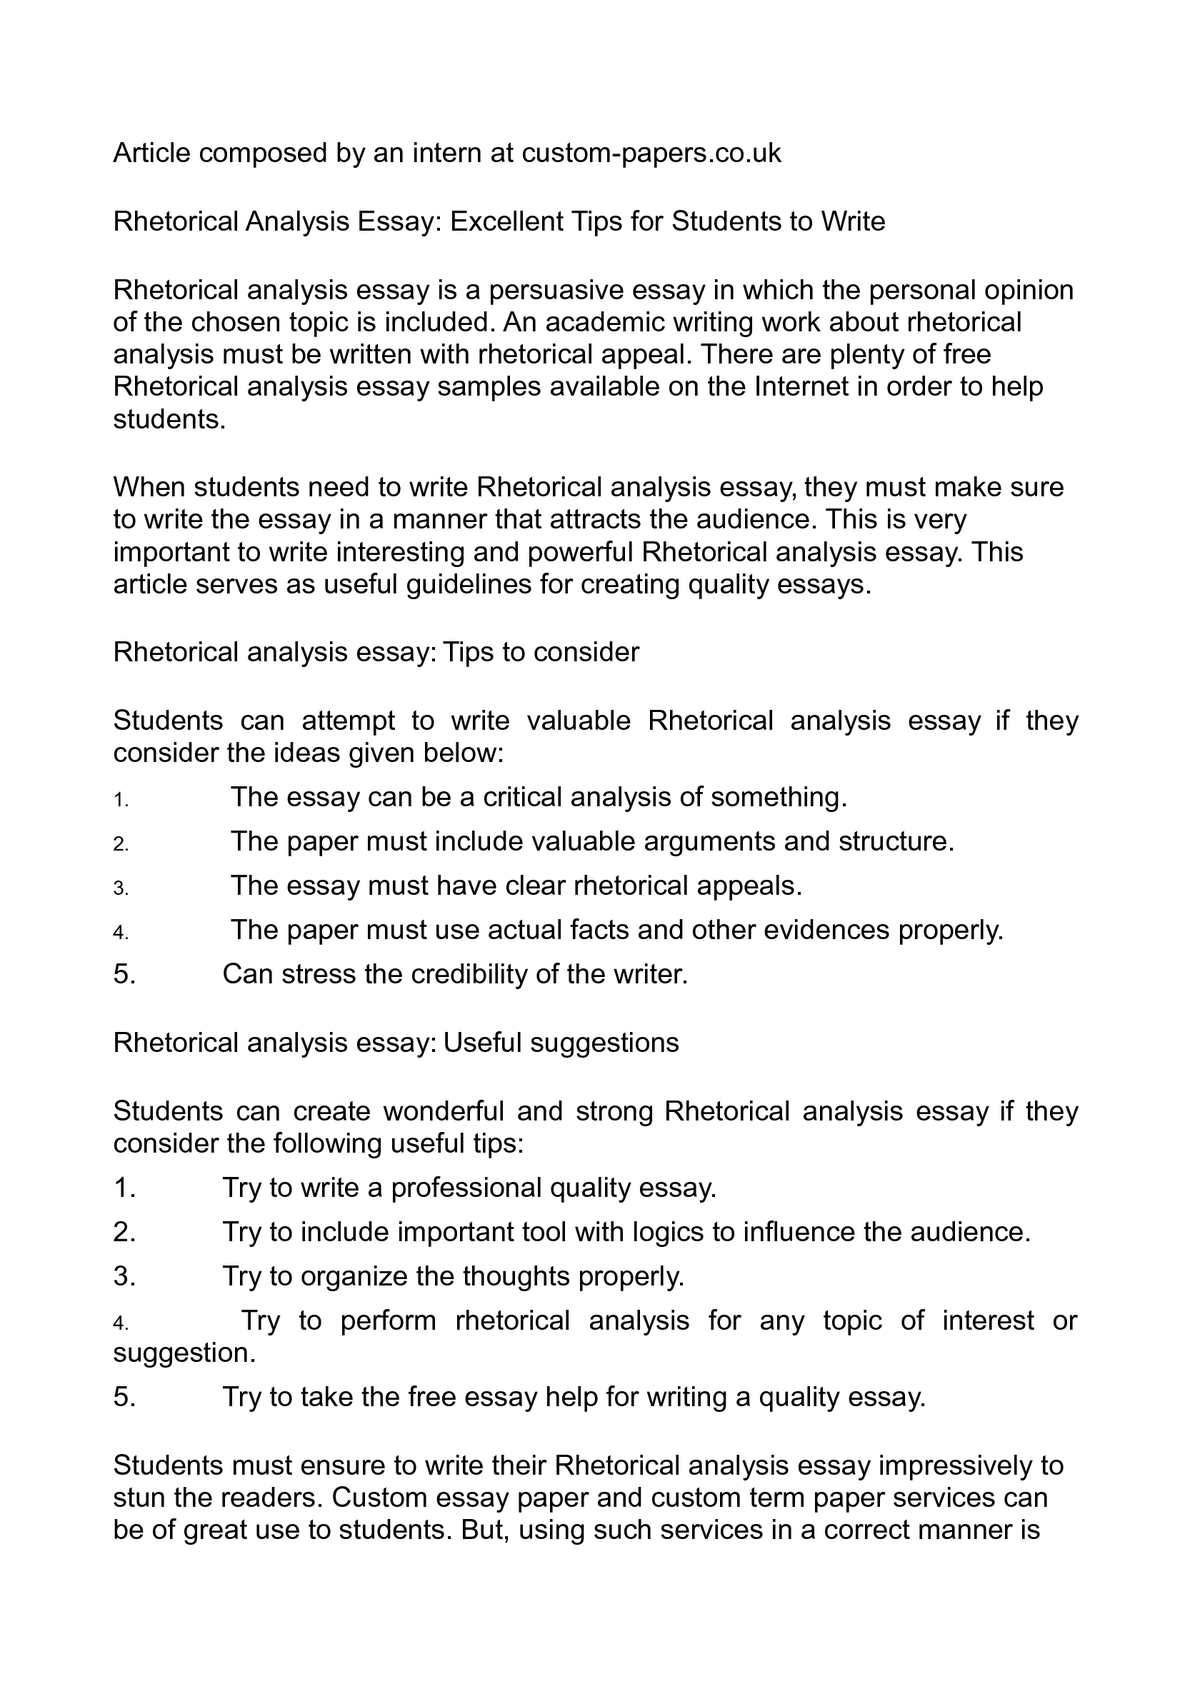 009 Essay Example Rethorical Calamo Rhetorical Analysis Excellent Tips For L